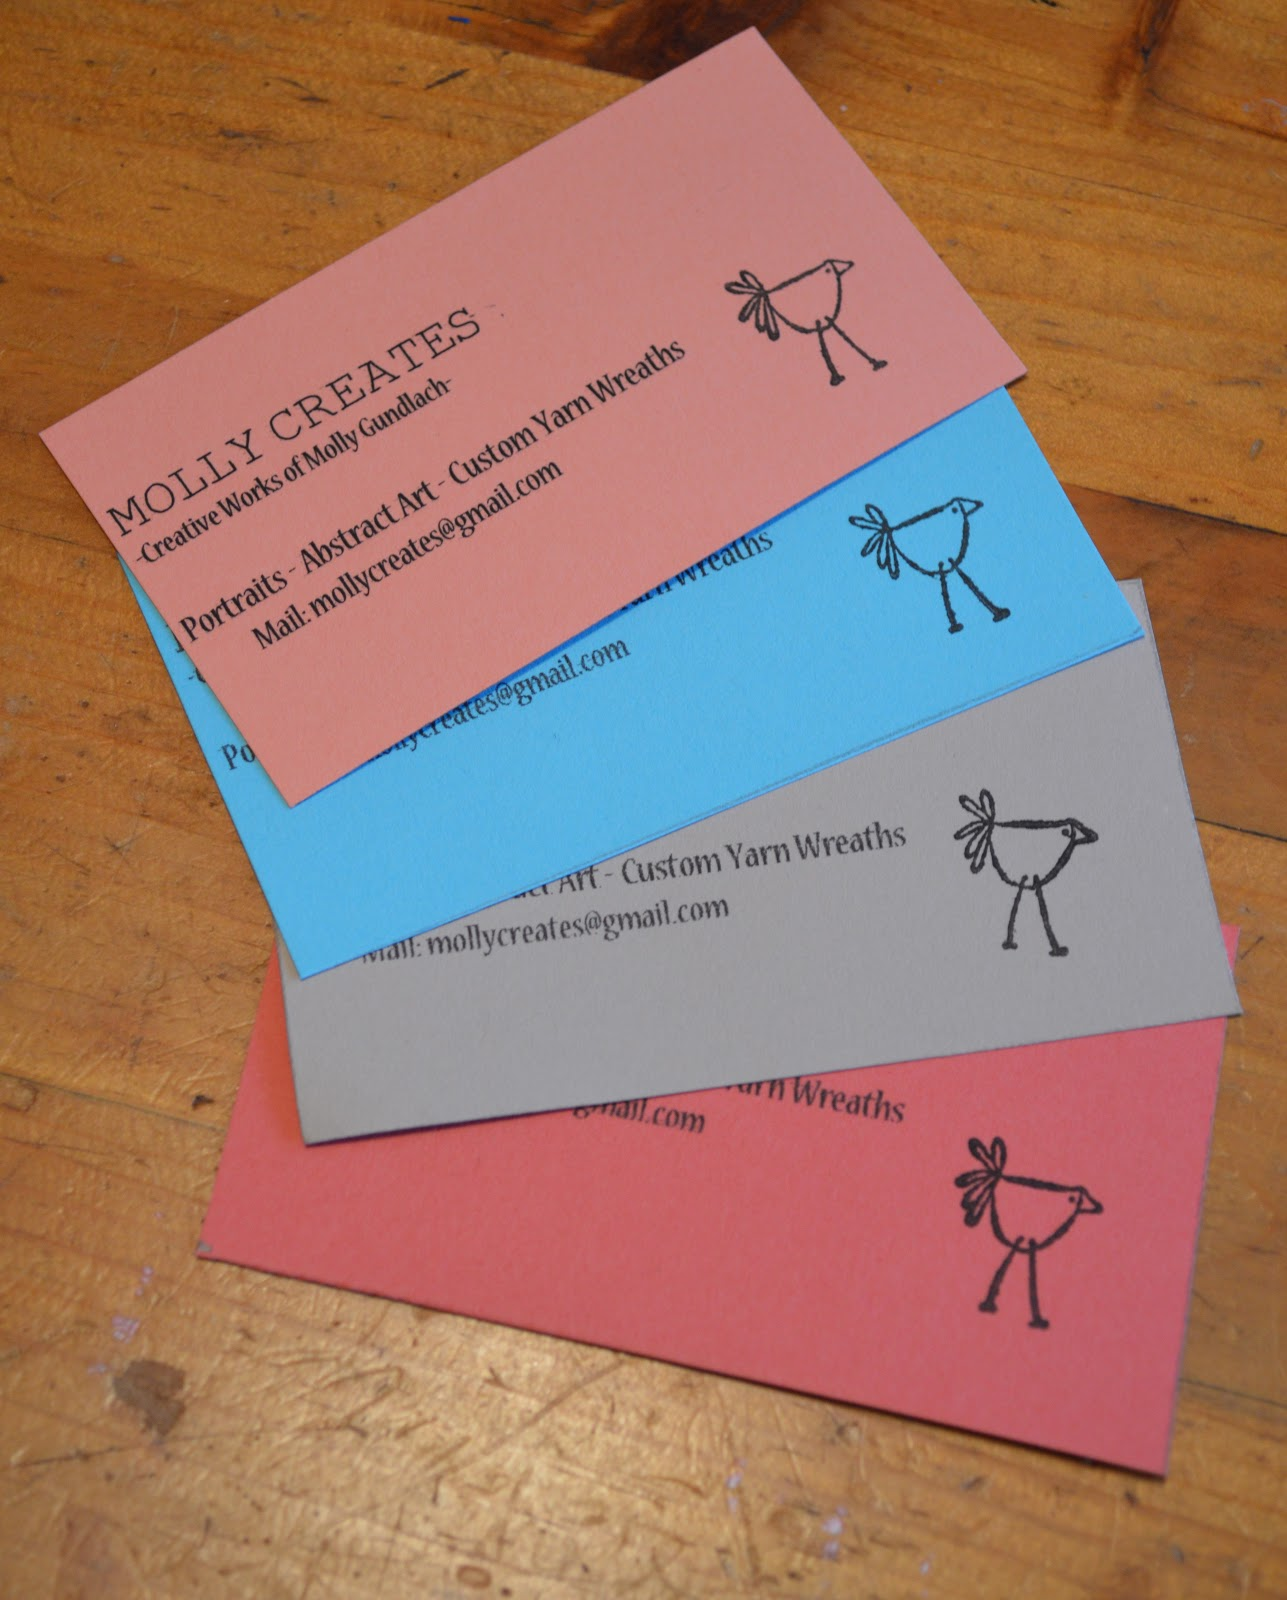 Fast DIY Business Cards - See Molly Create Blog - Molly Creates